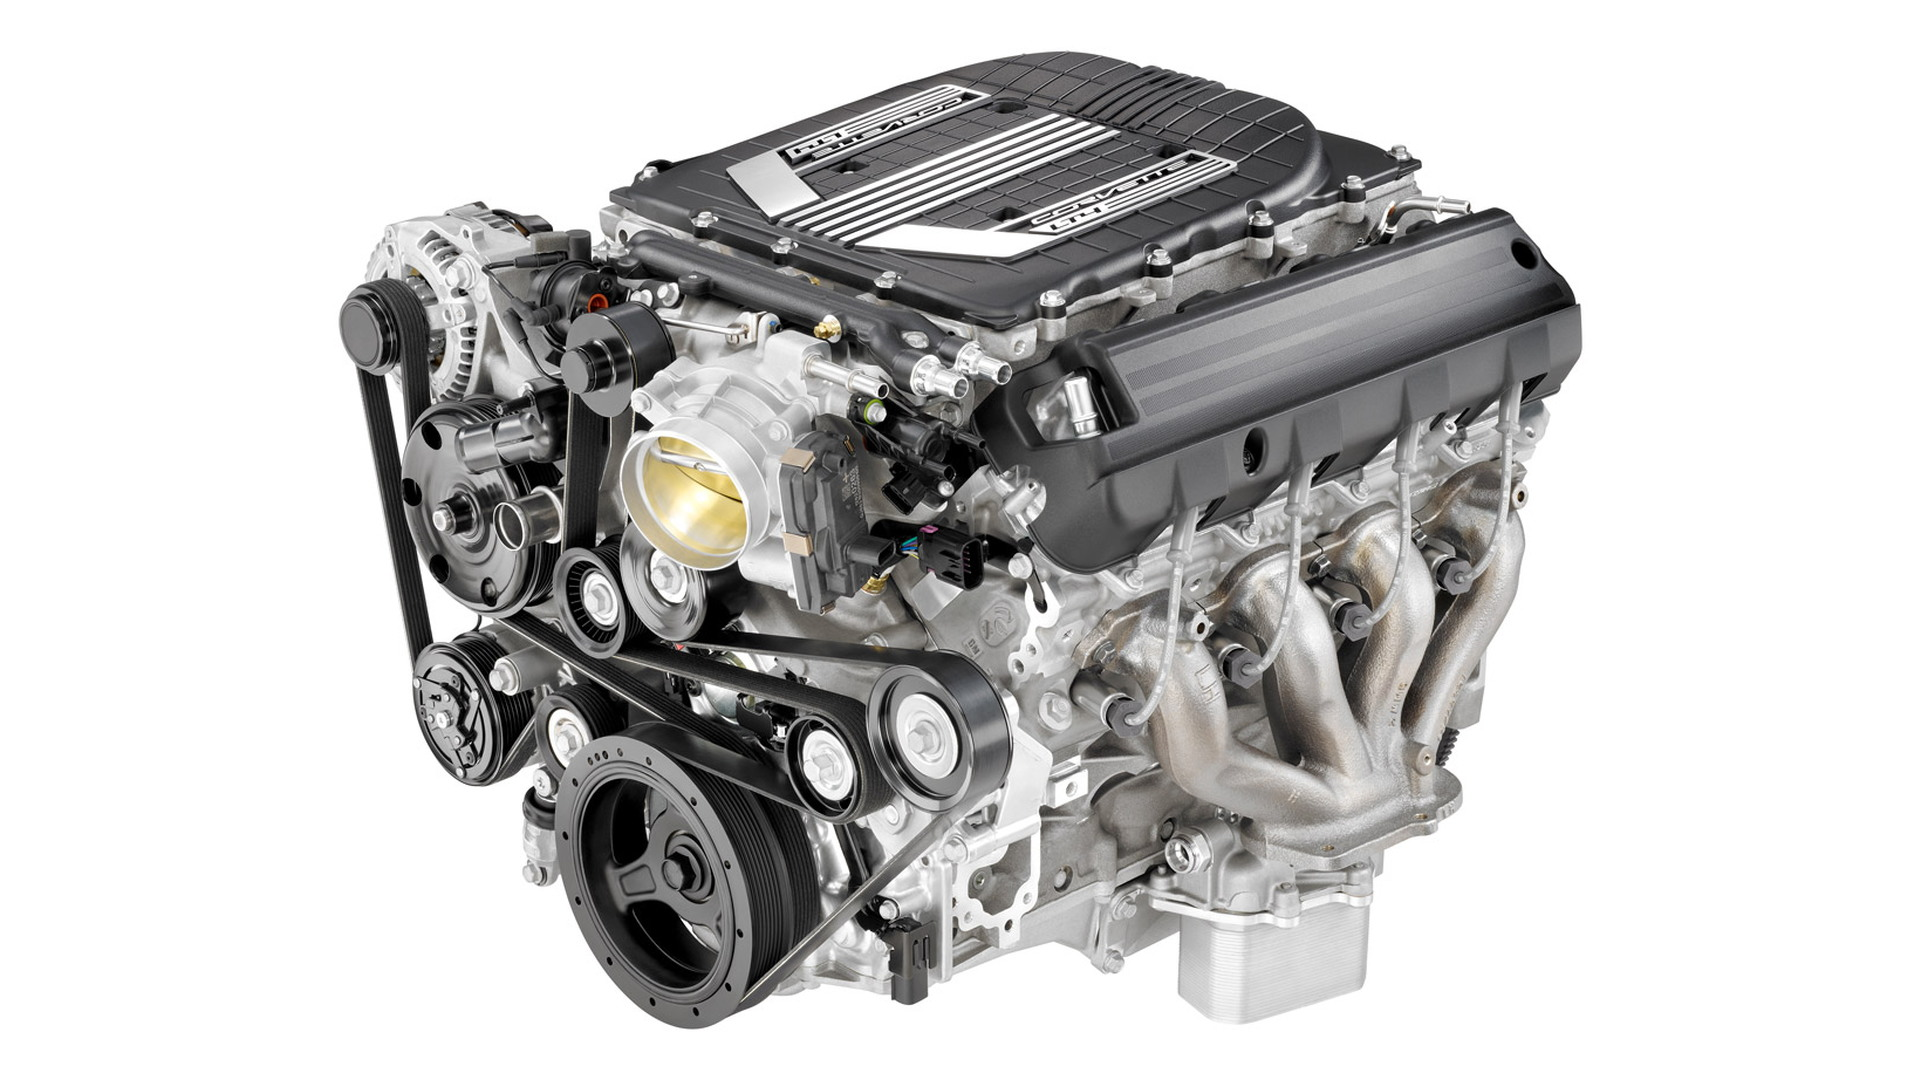 Supercharged 6.2-liter LT4 V-8